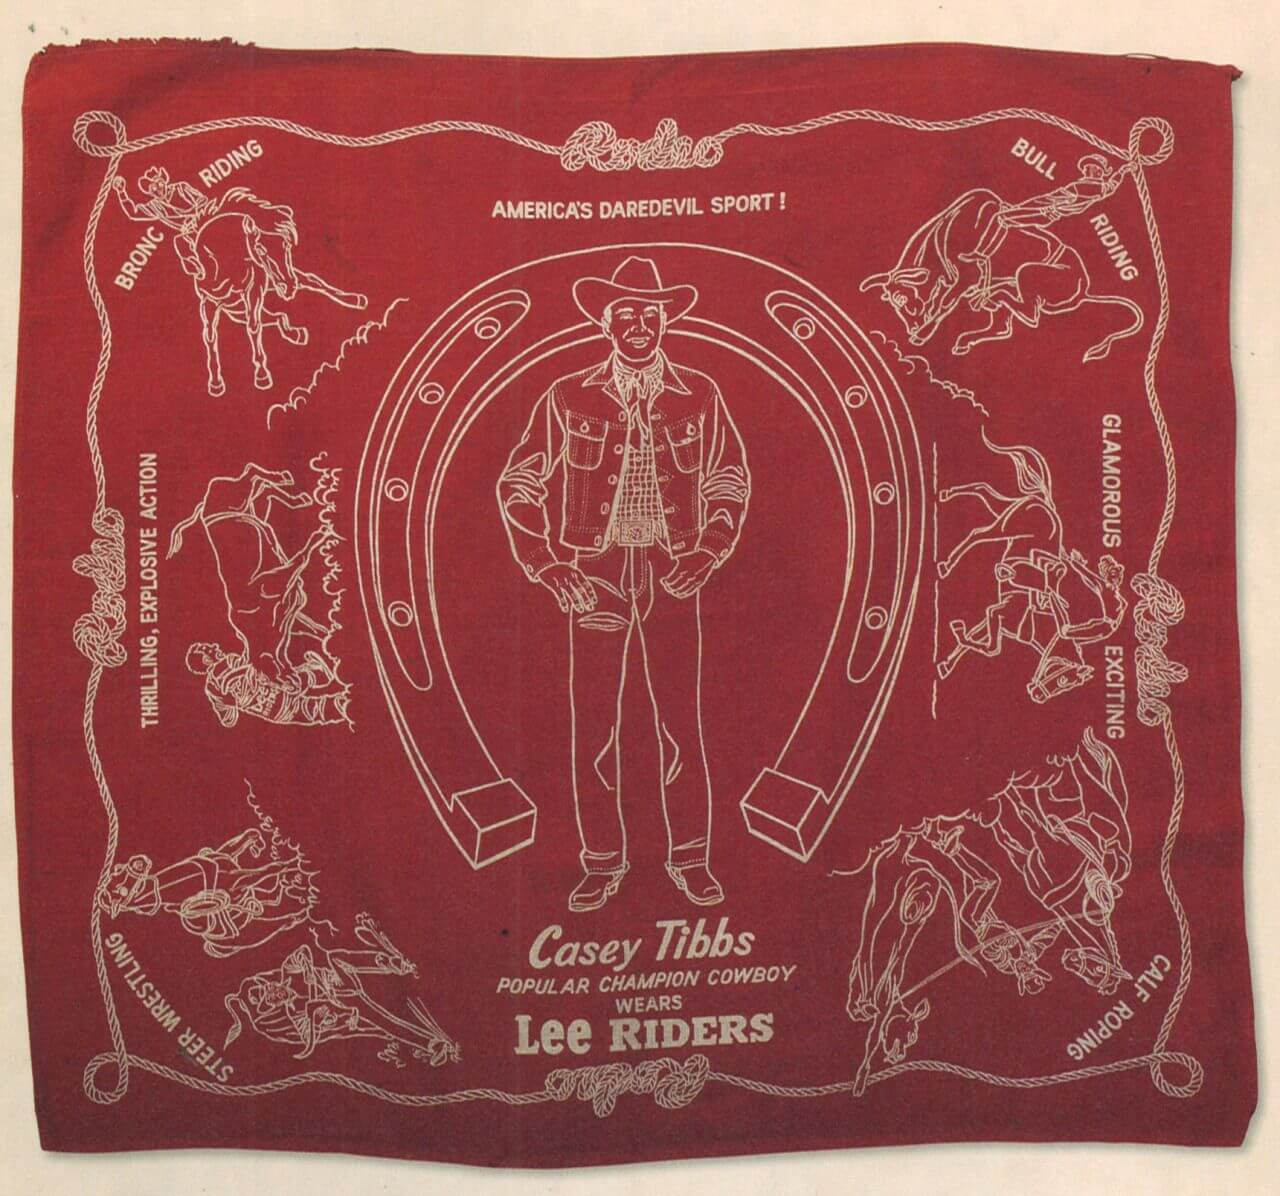 lee riders promotional bandana for casey tibbs from the 1950s